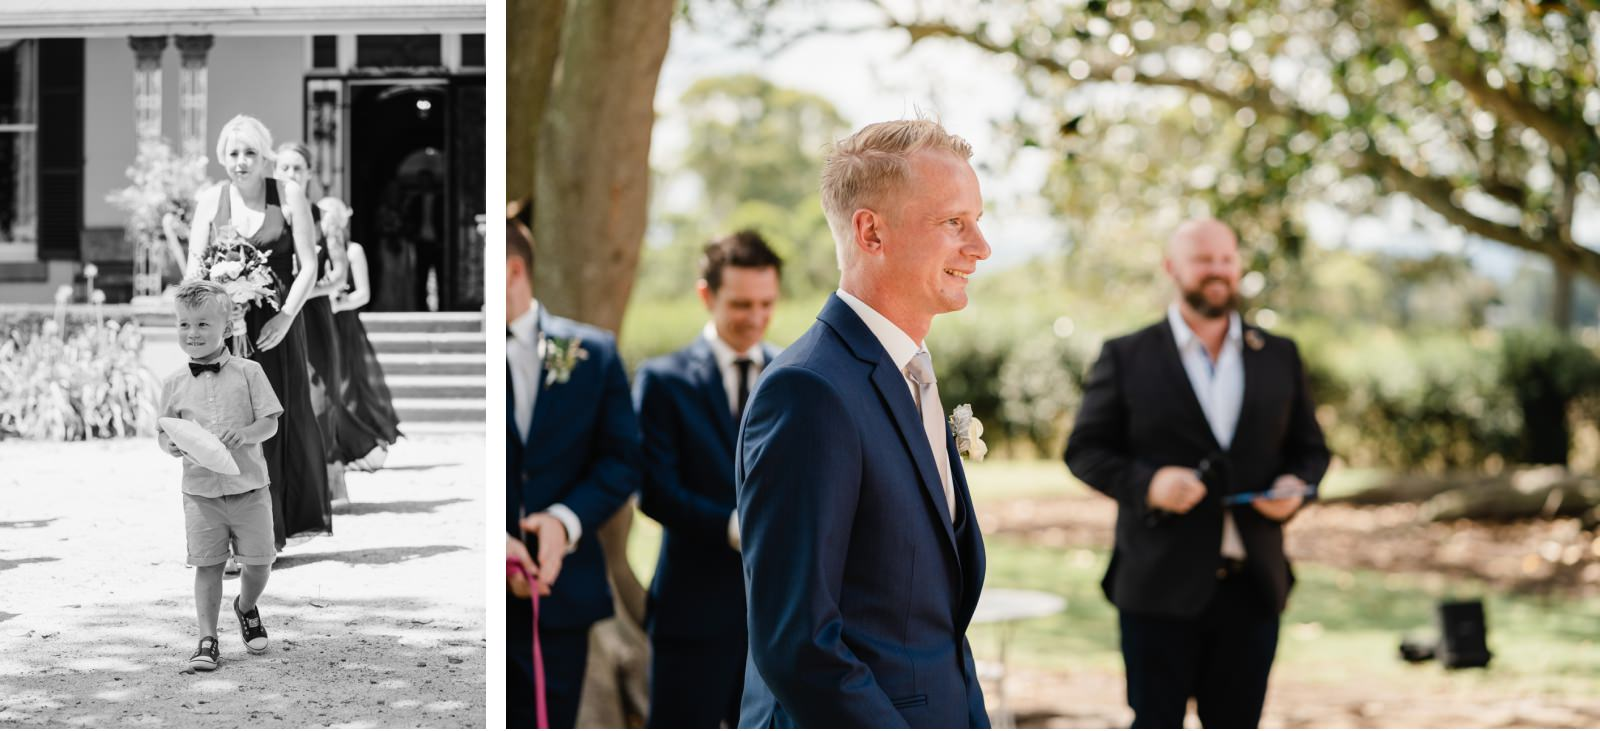 wallalong-house-hunter-valley-wedding-photographer-27